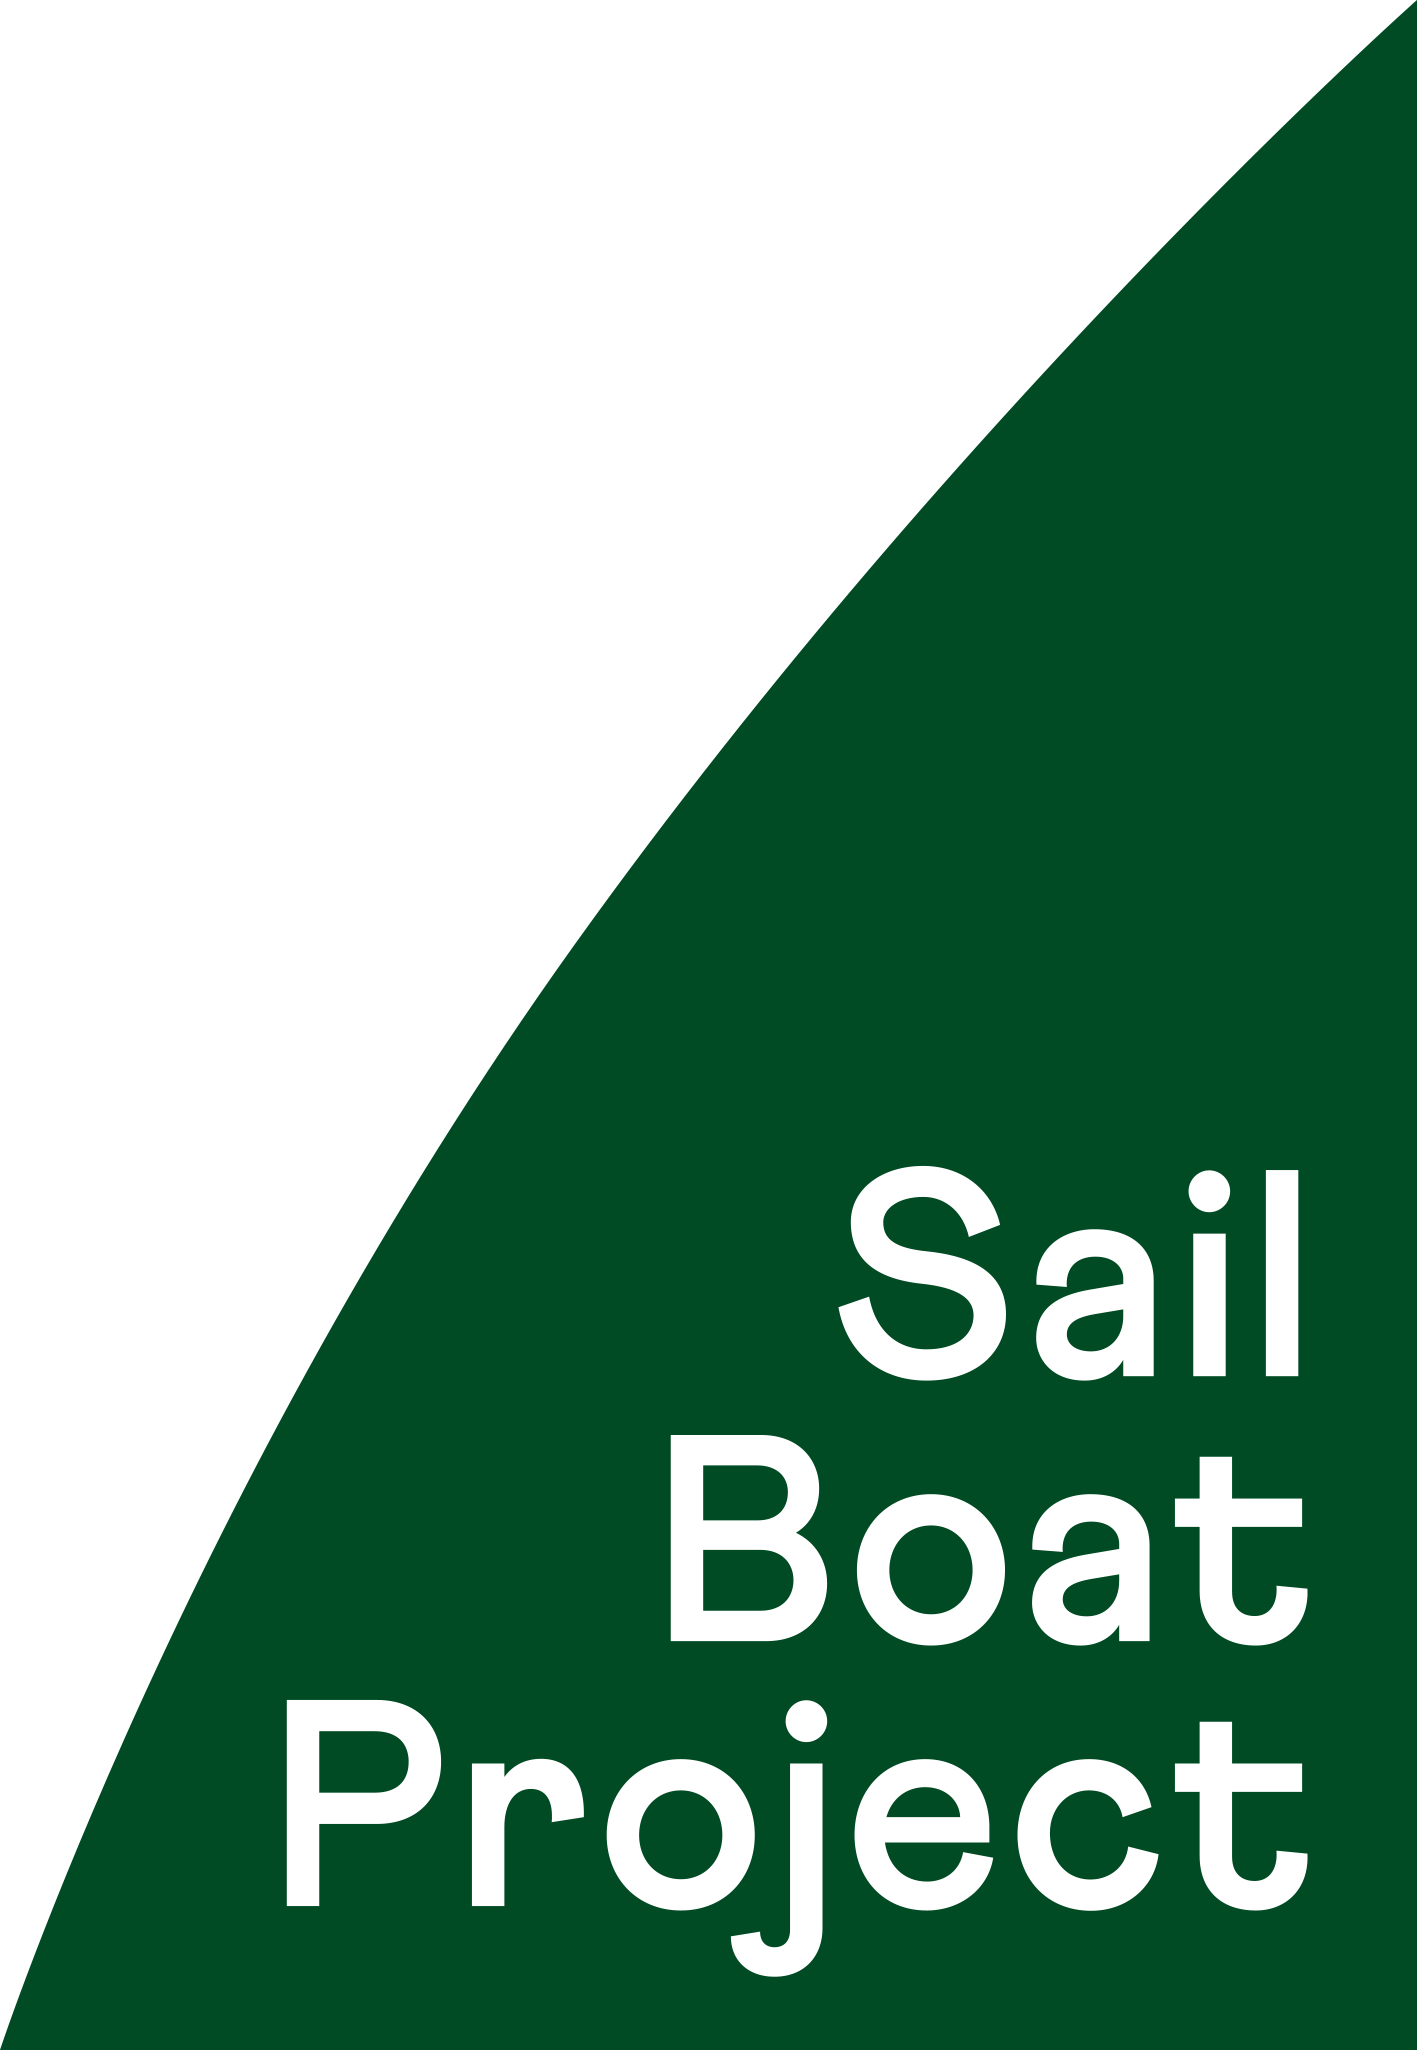 Sail Boat Project